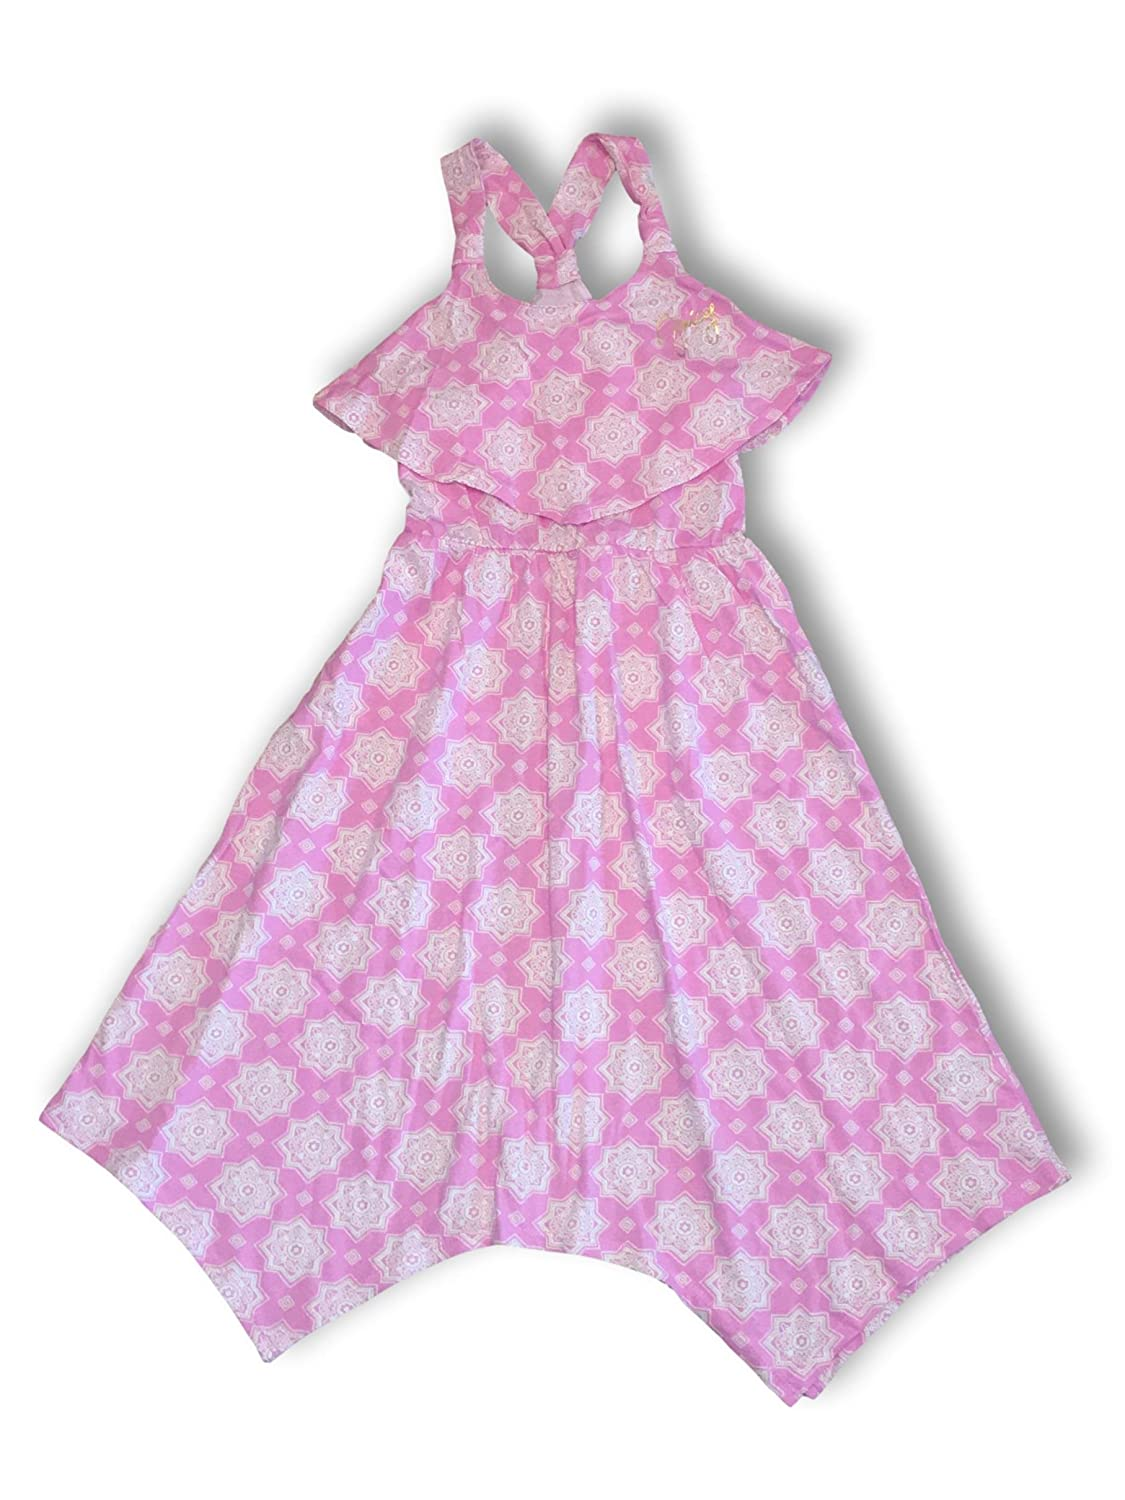 8b8f8cc5c1b6 Amazon.com  Juicy Couture Girls Summer Popover High-Low Sun Dresses  Colorful   Stylish  Clothing